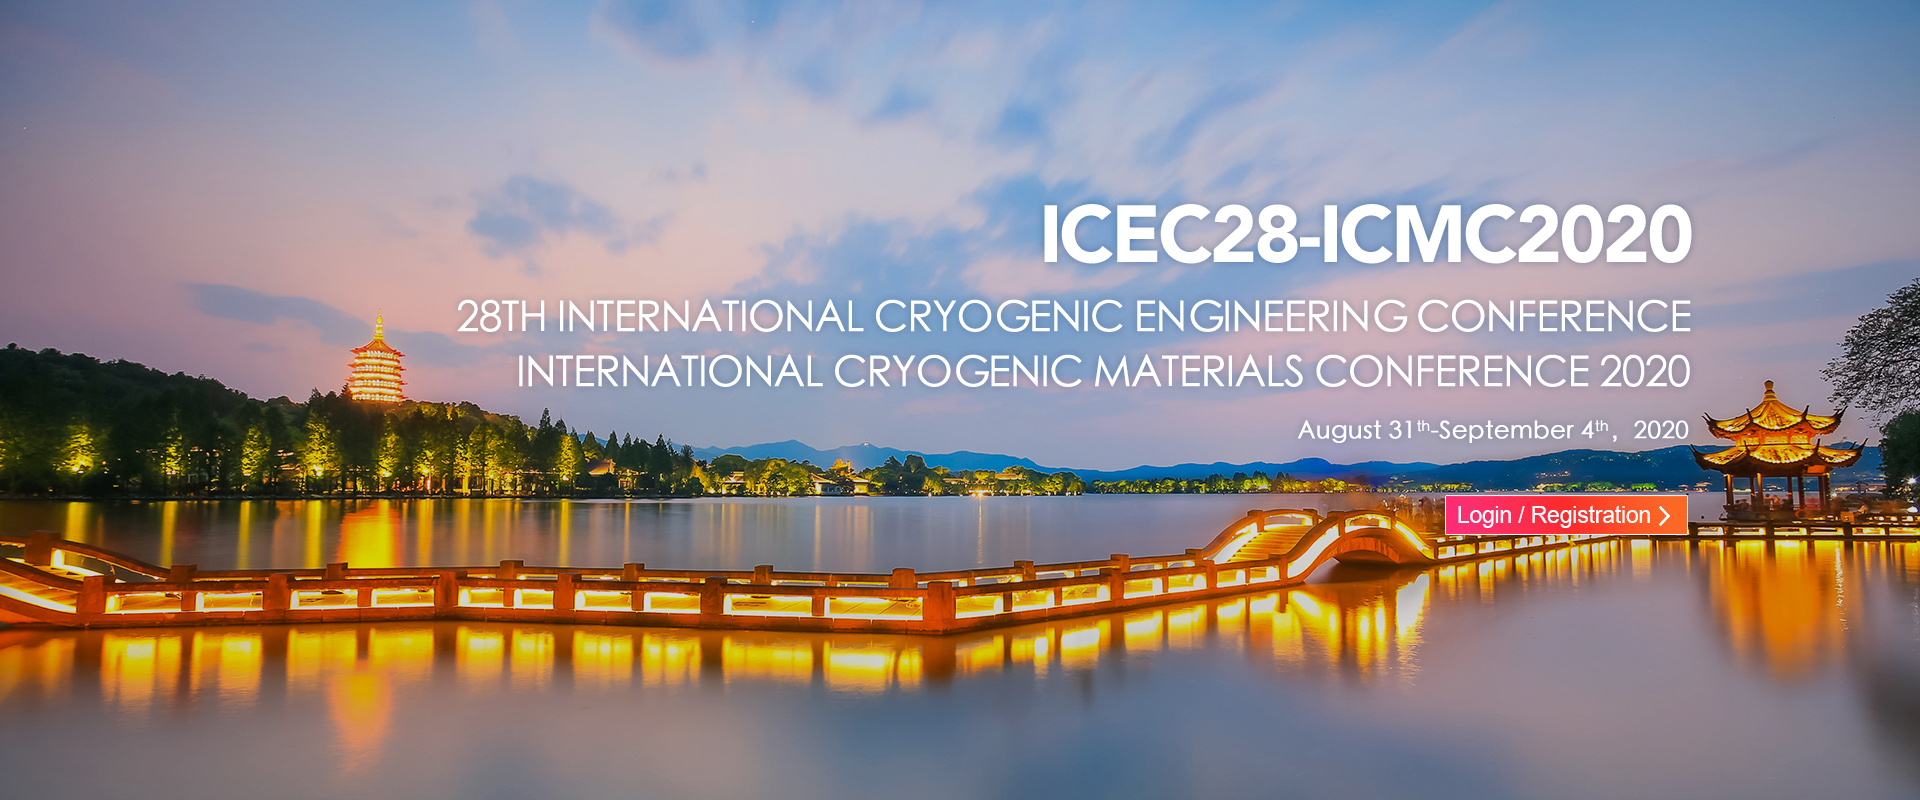 28th International Cryogenic Engineering Conference and International Cryogenic Materials Conference 2020